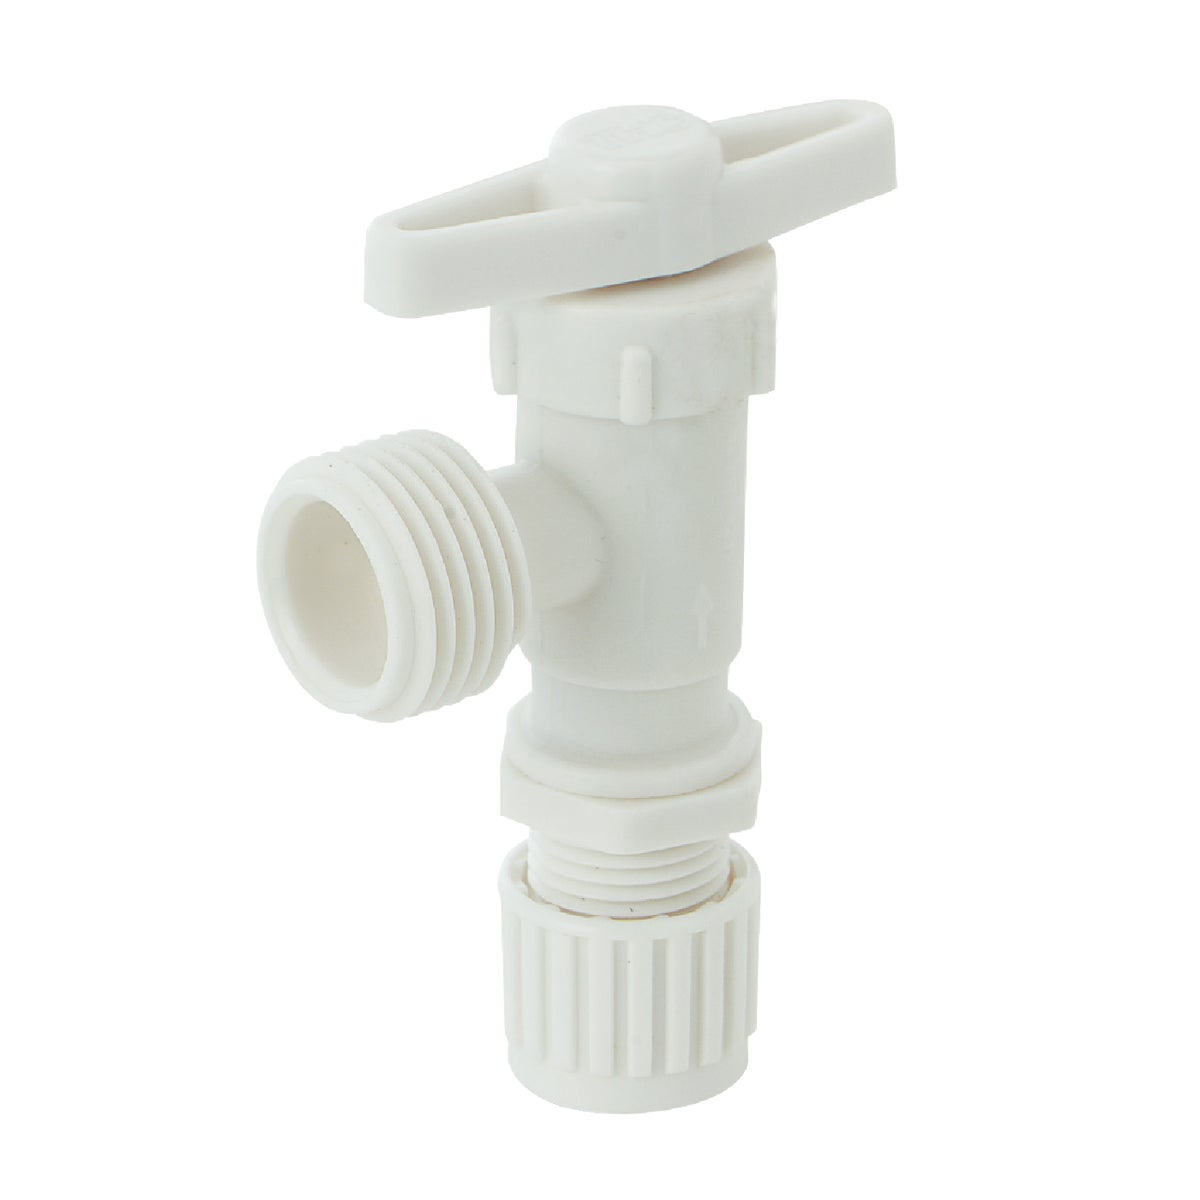 1/2X3/4MHT VALVE - 16887 by Flair It West